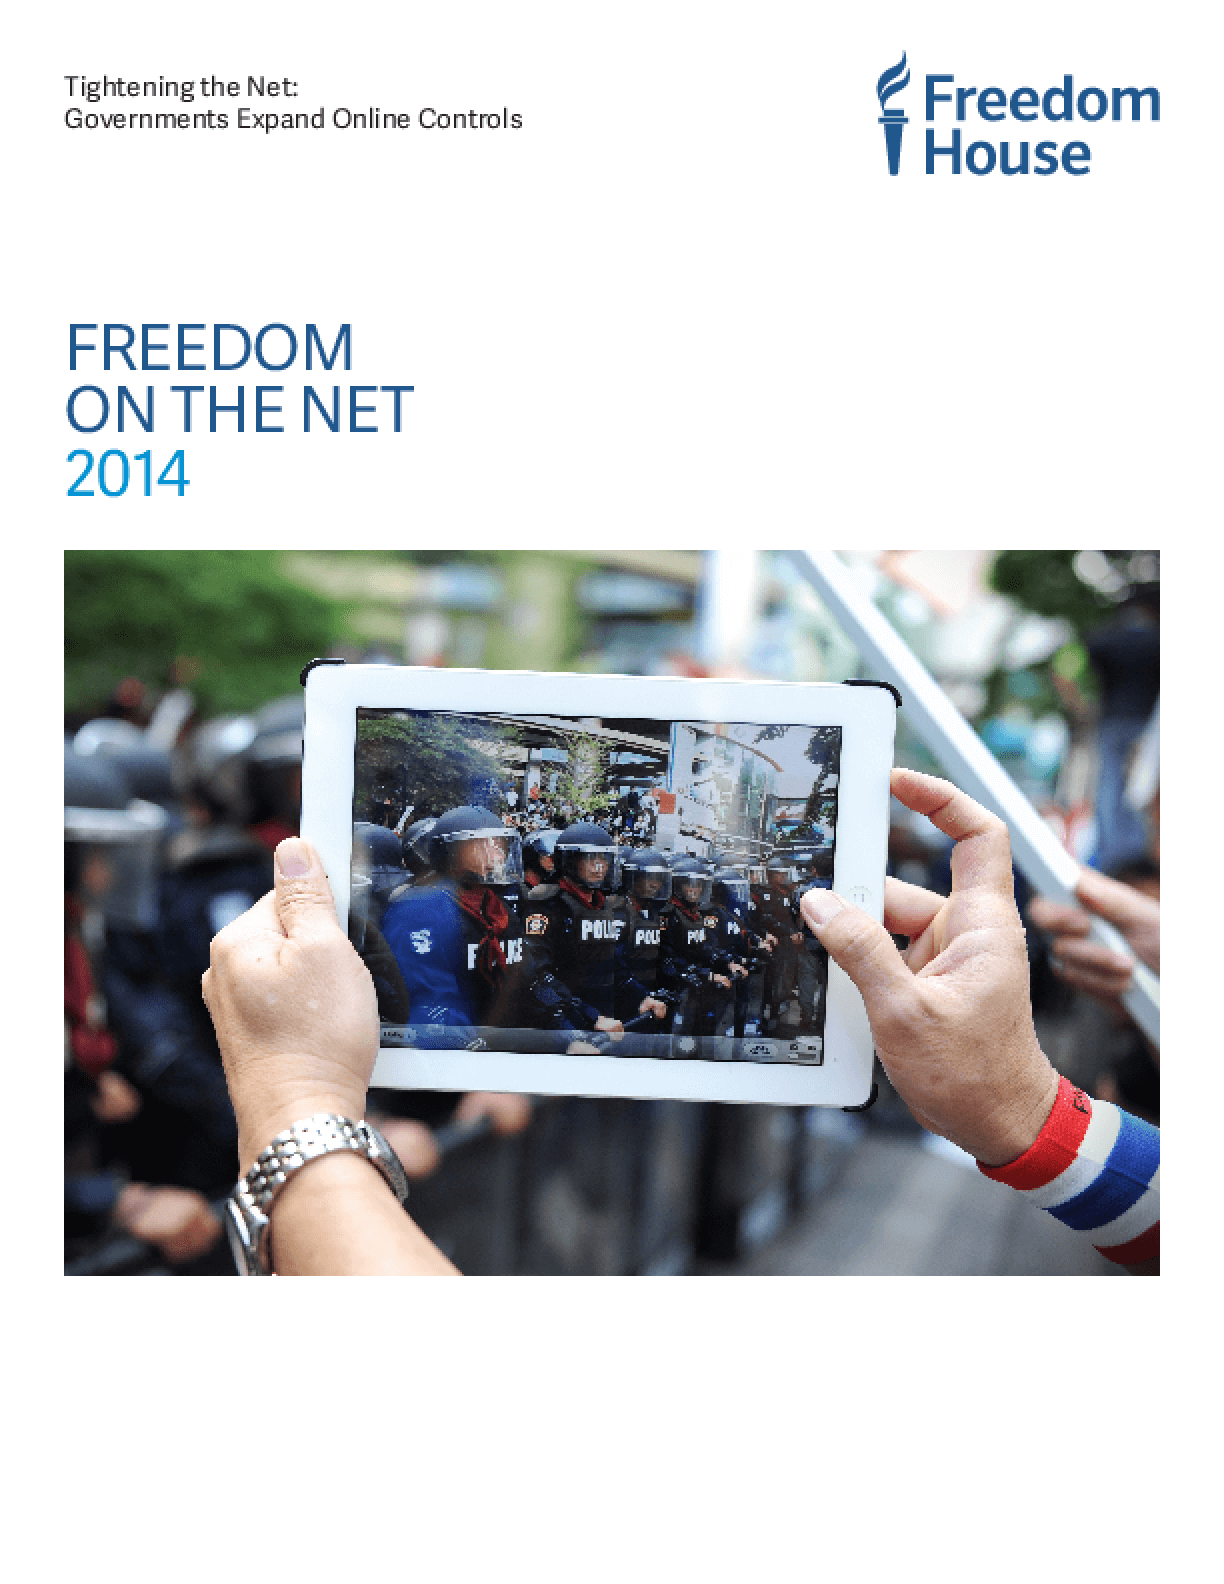 Freedom on the Net 2014 - Tightening the Net: Governments Expand Online Controls (Summary)